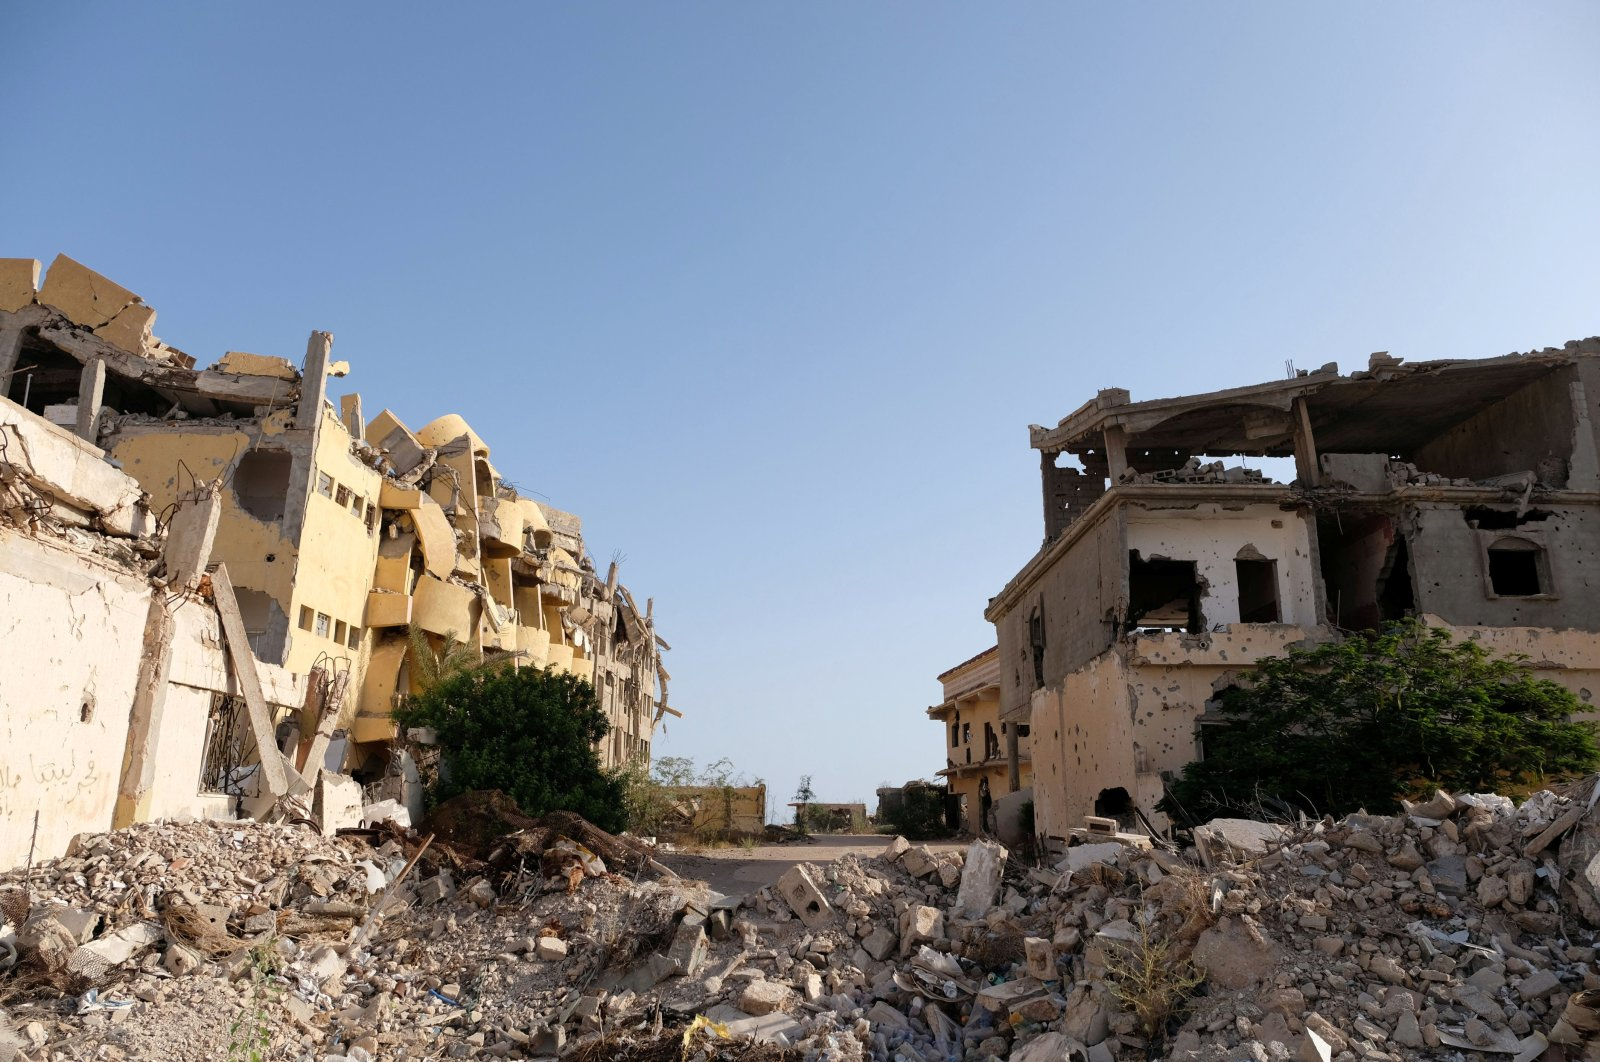 Buildings destroyed during past fighting with Daesh militants in Sirte, Libya, Aug. 18, 2020. (REUTERS Photo)